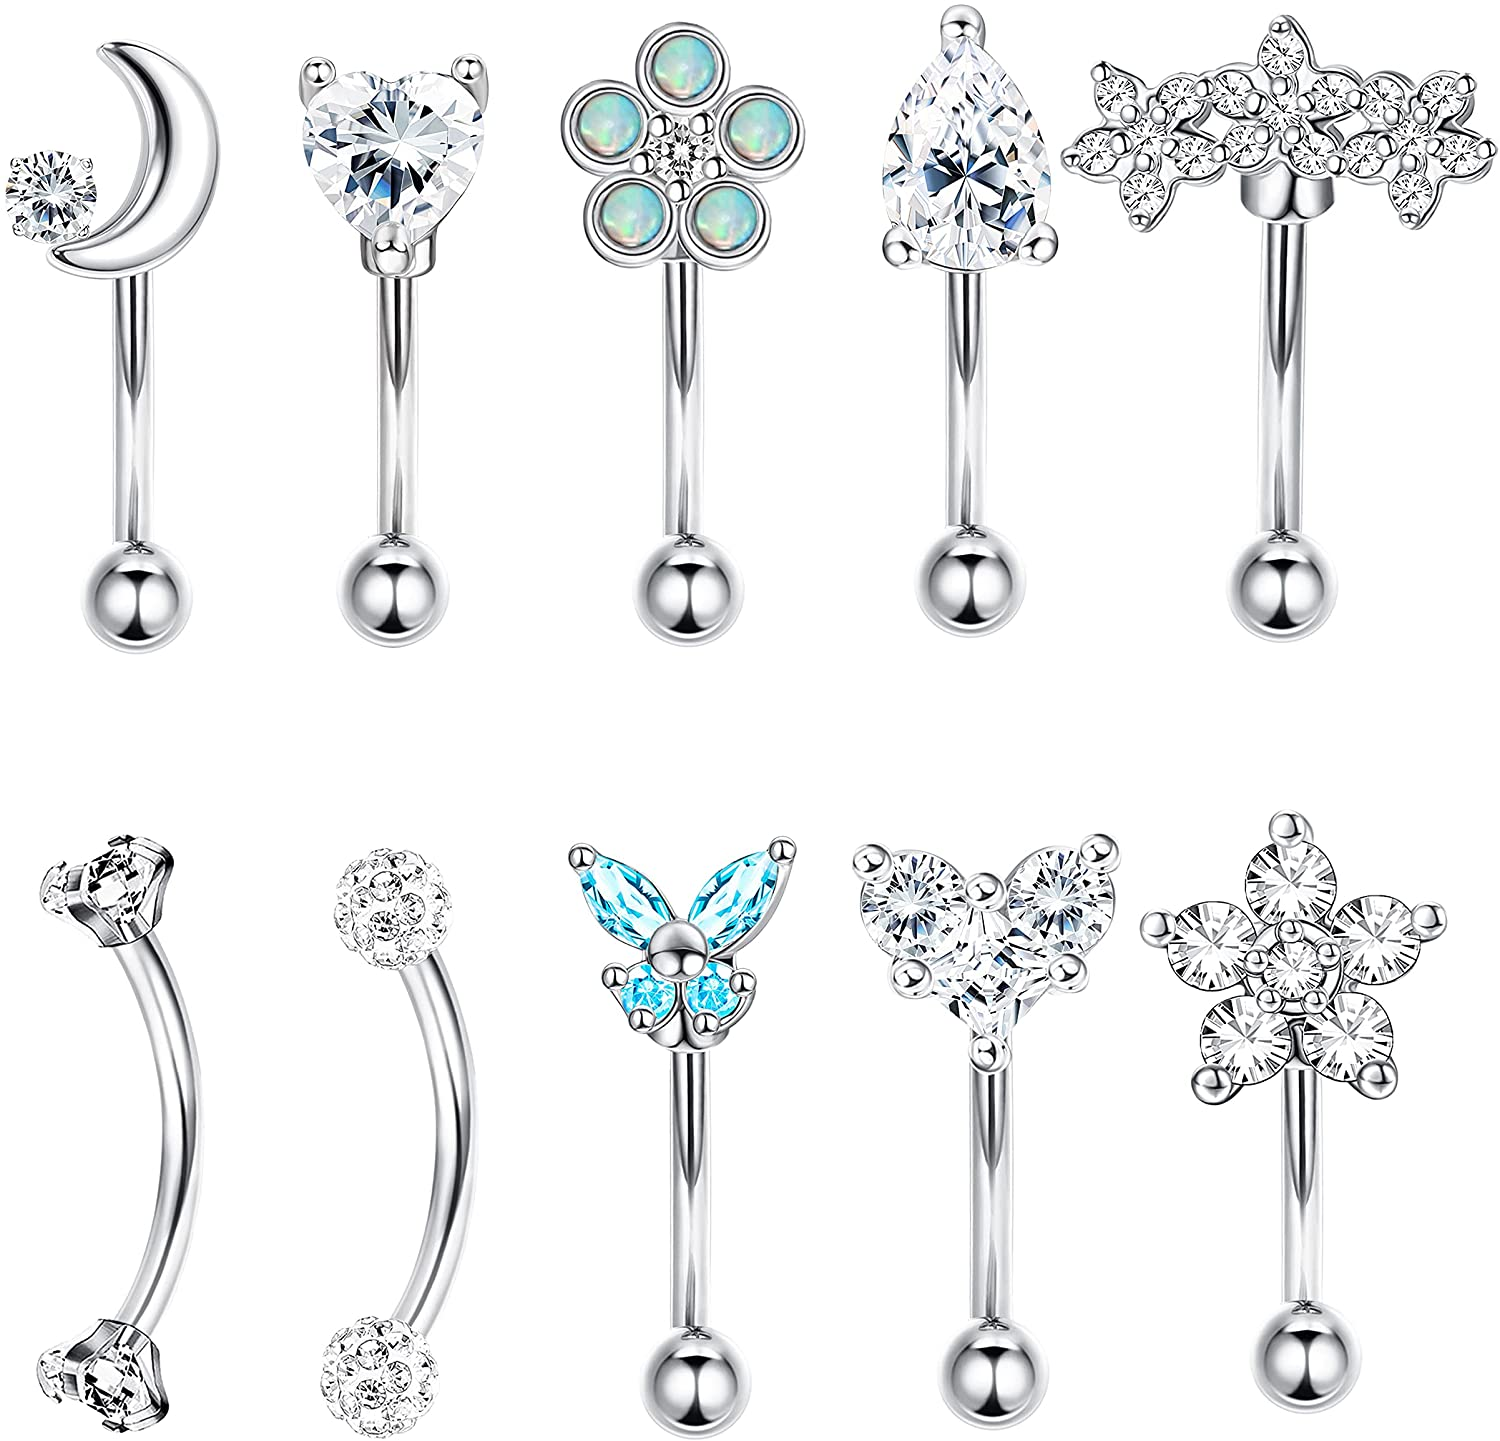 THUNARAZ 16G Rook Daith Earrings for Women Surgical Steel 6mm Eyebrow Rings Inlaid CZ Opal Turquoise Belly Lip Ring Cartilage Surface Tragus Piercing Jewelry 10 Pcs